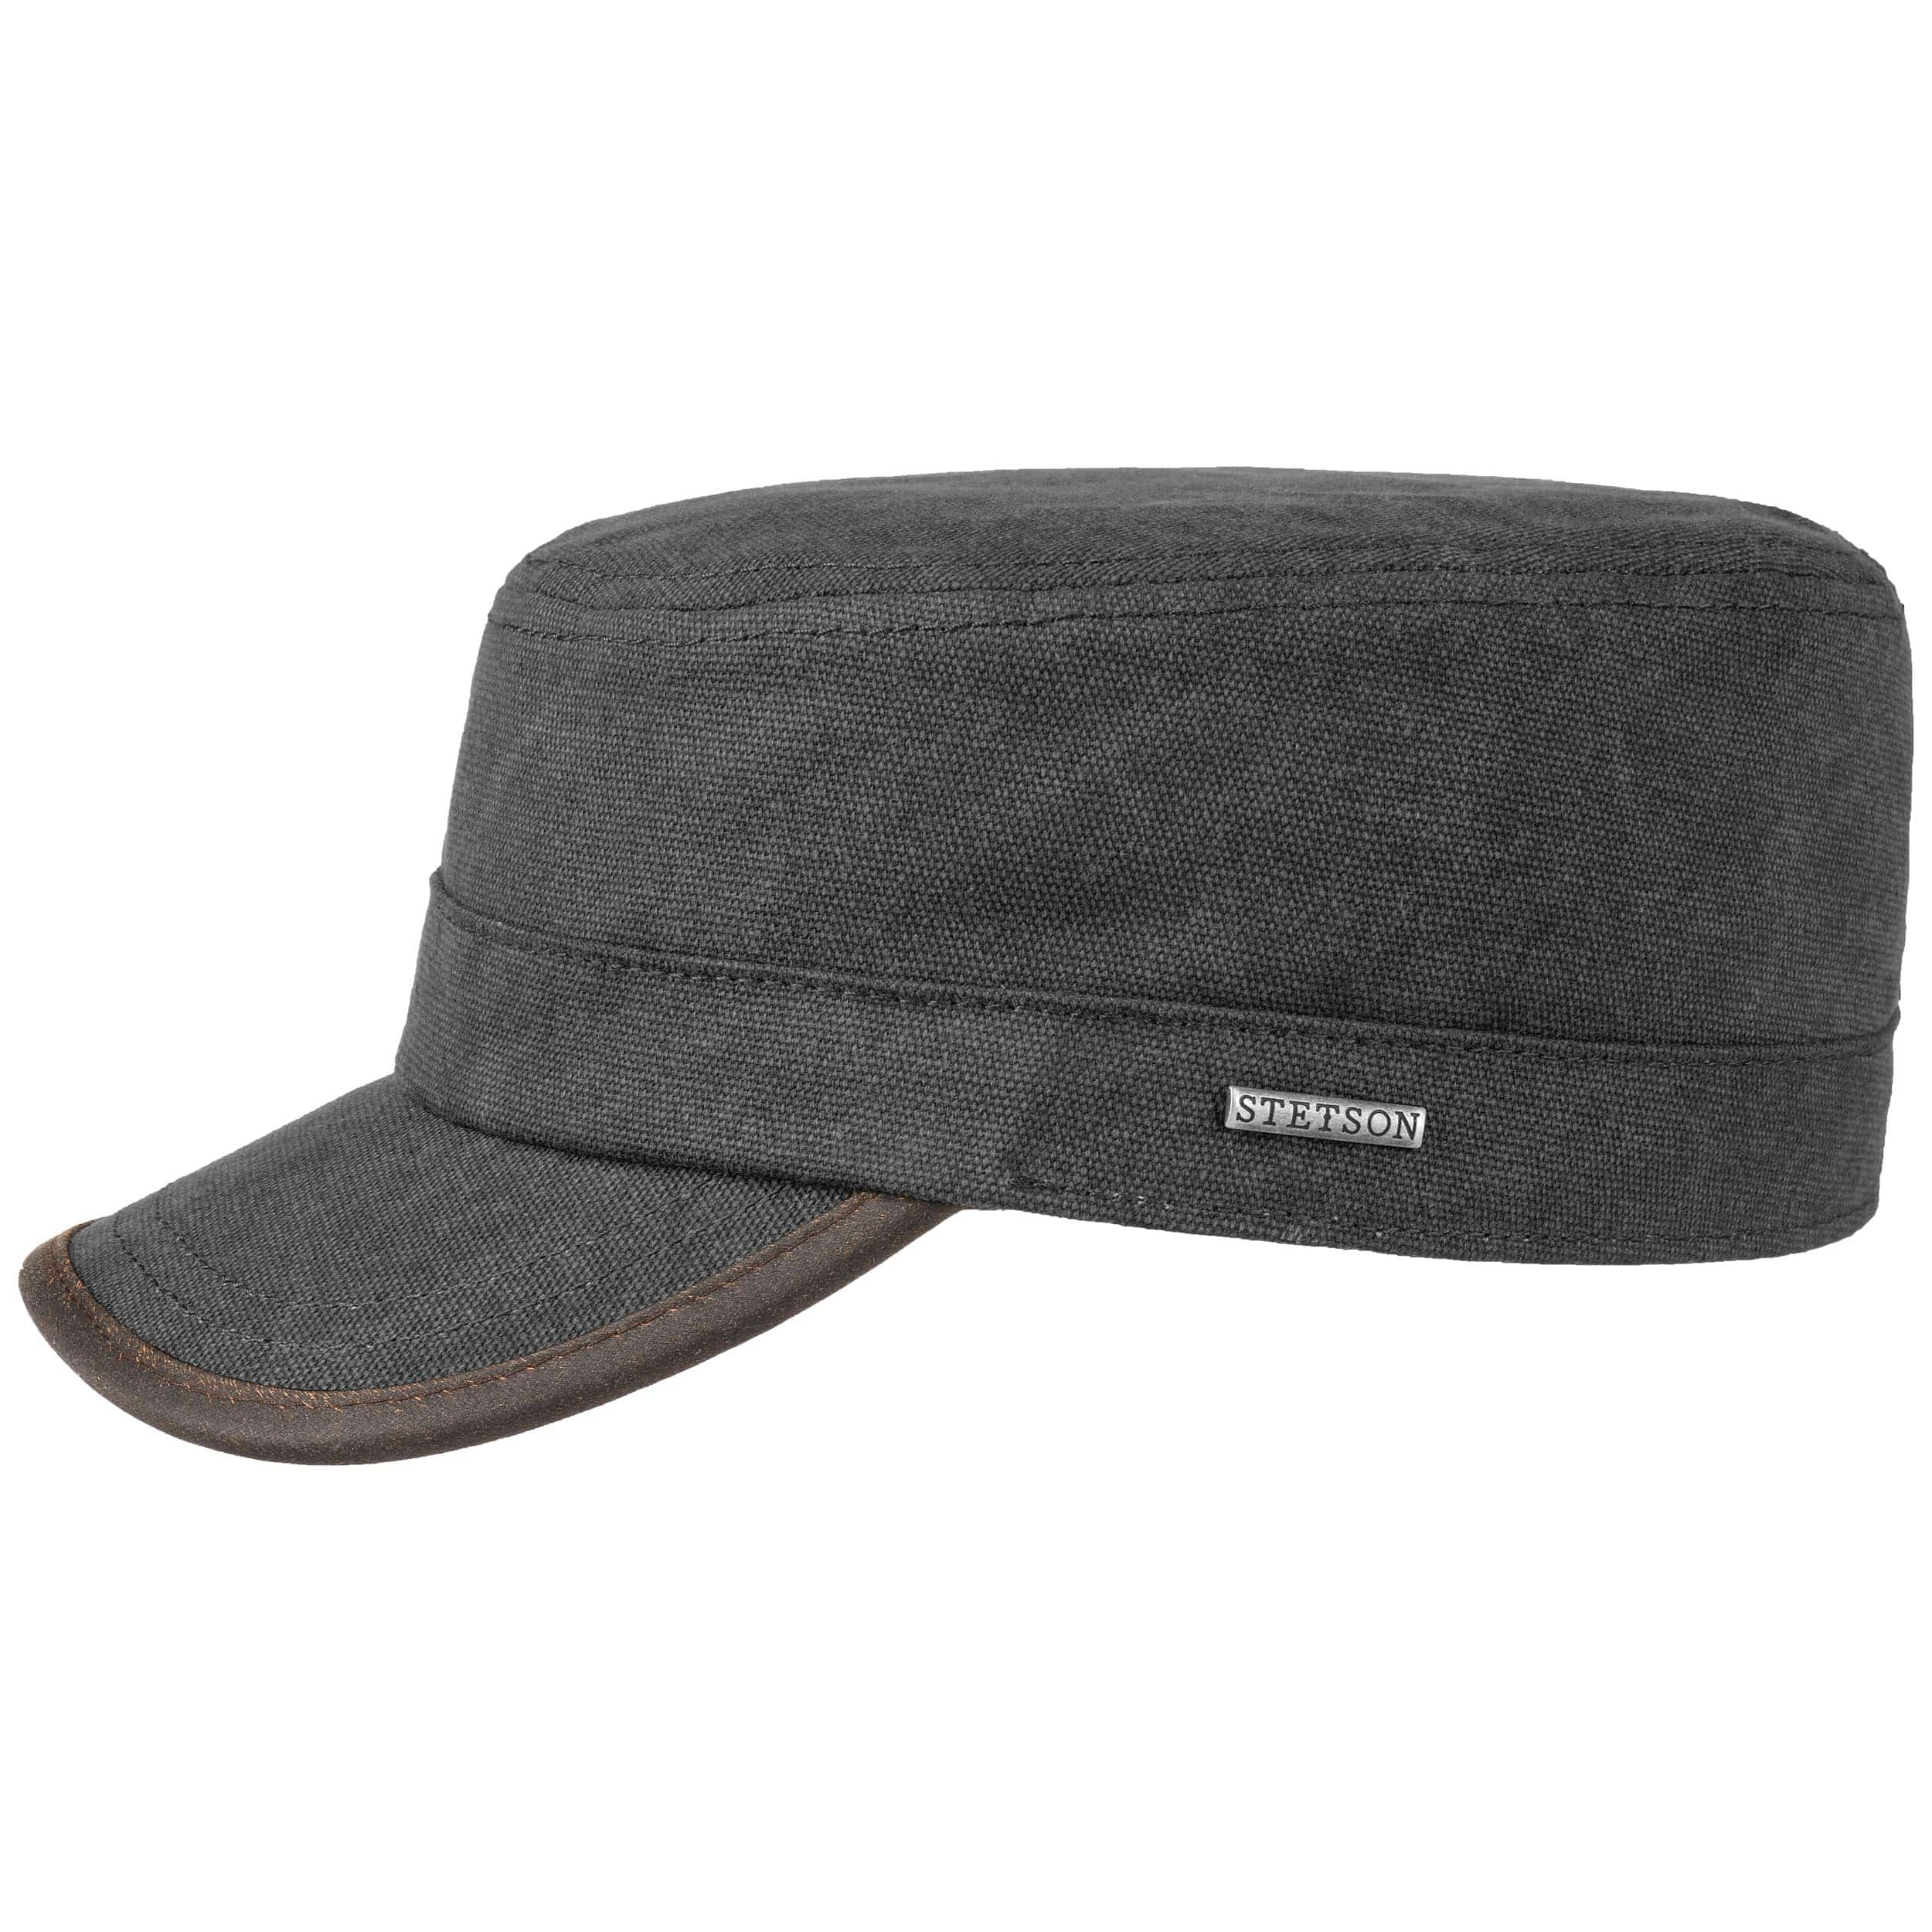 Canvas Army Cap Fleece Lining by Stetson - anthracite 1 ... 5bc33e350f1